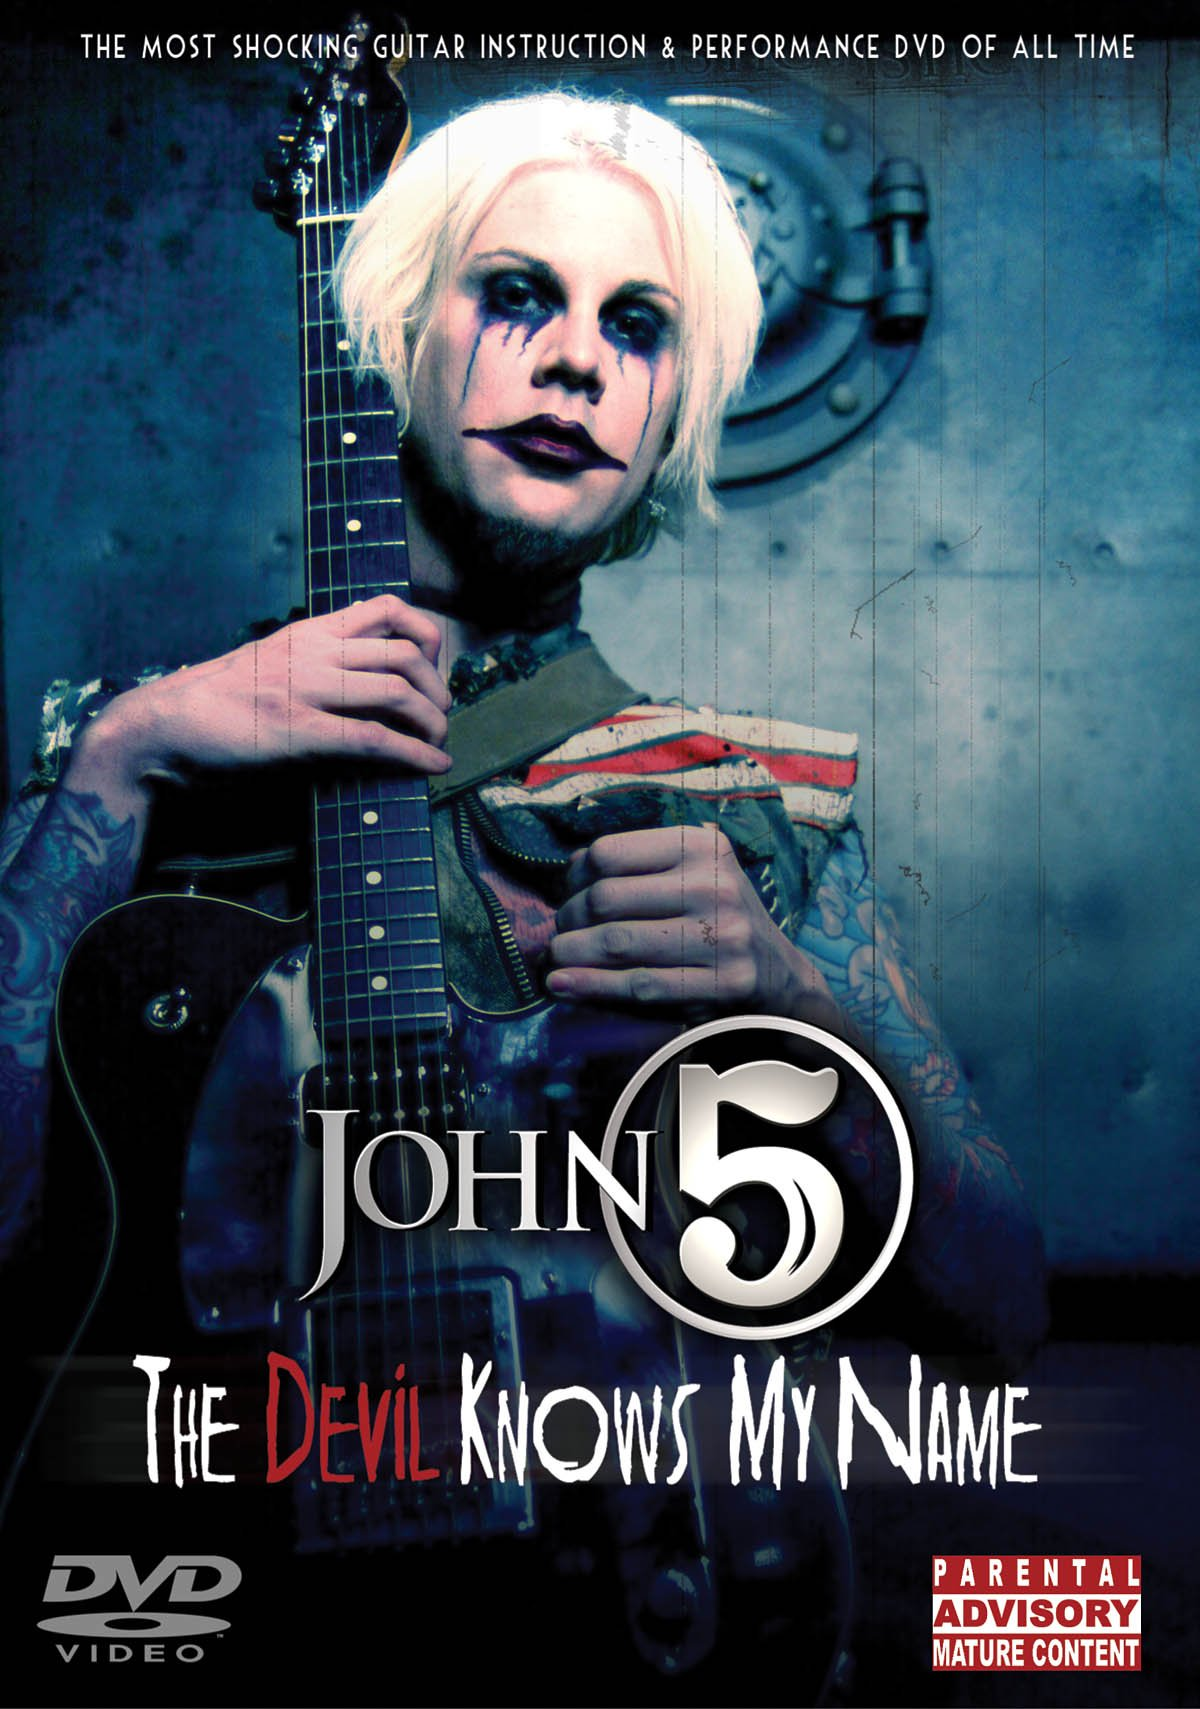 John 5 - The Devil Knows My Name (DVD)